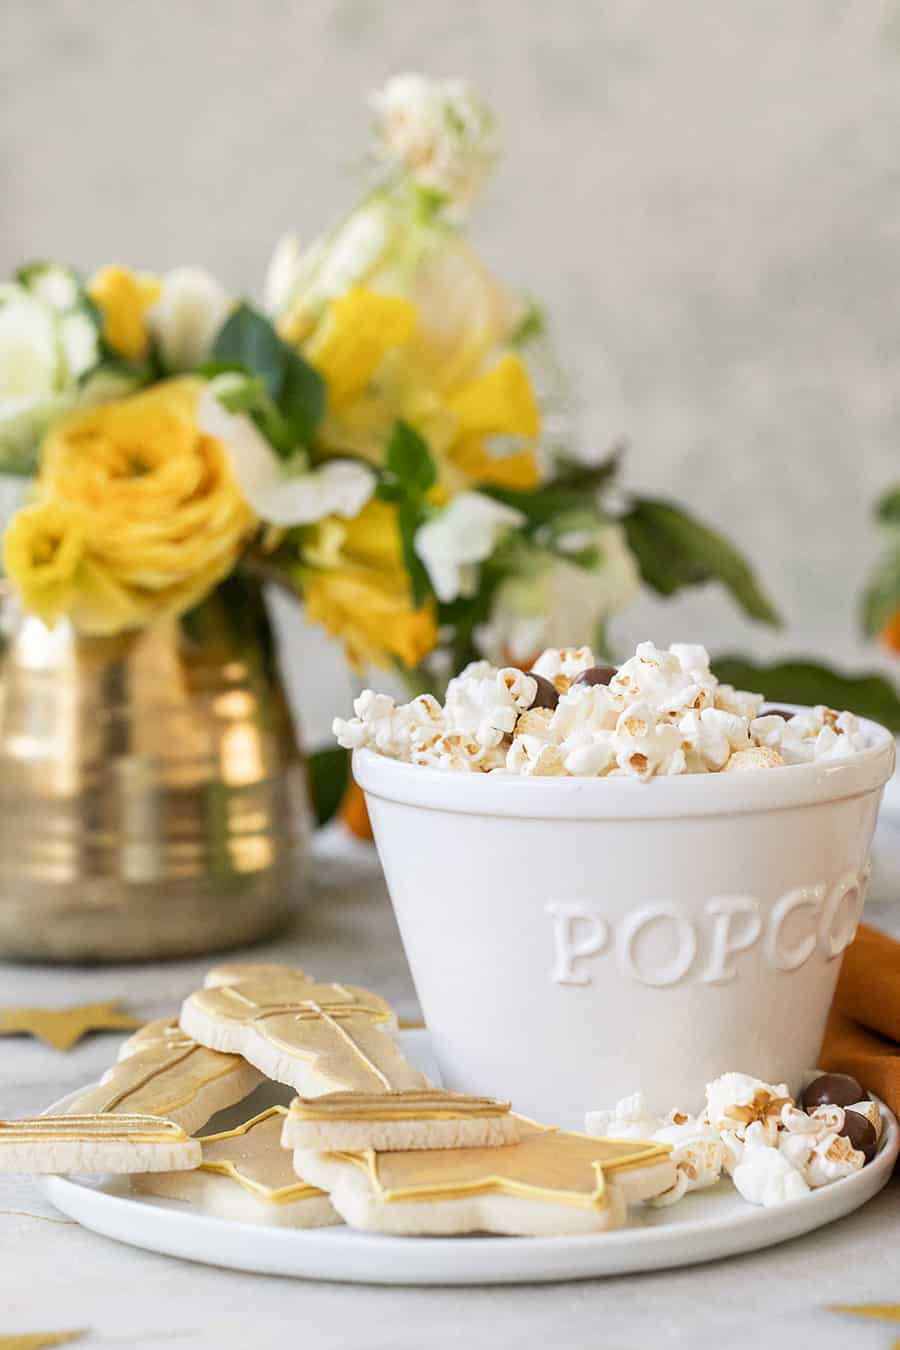 Popcorn and yellow flowers for an Oscar party